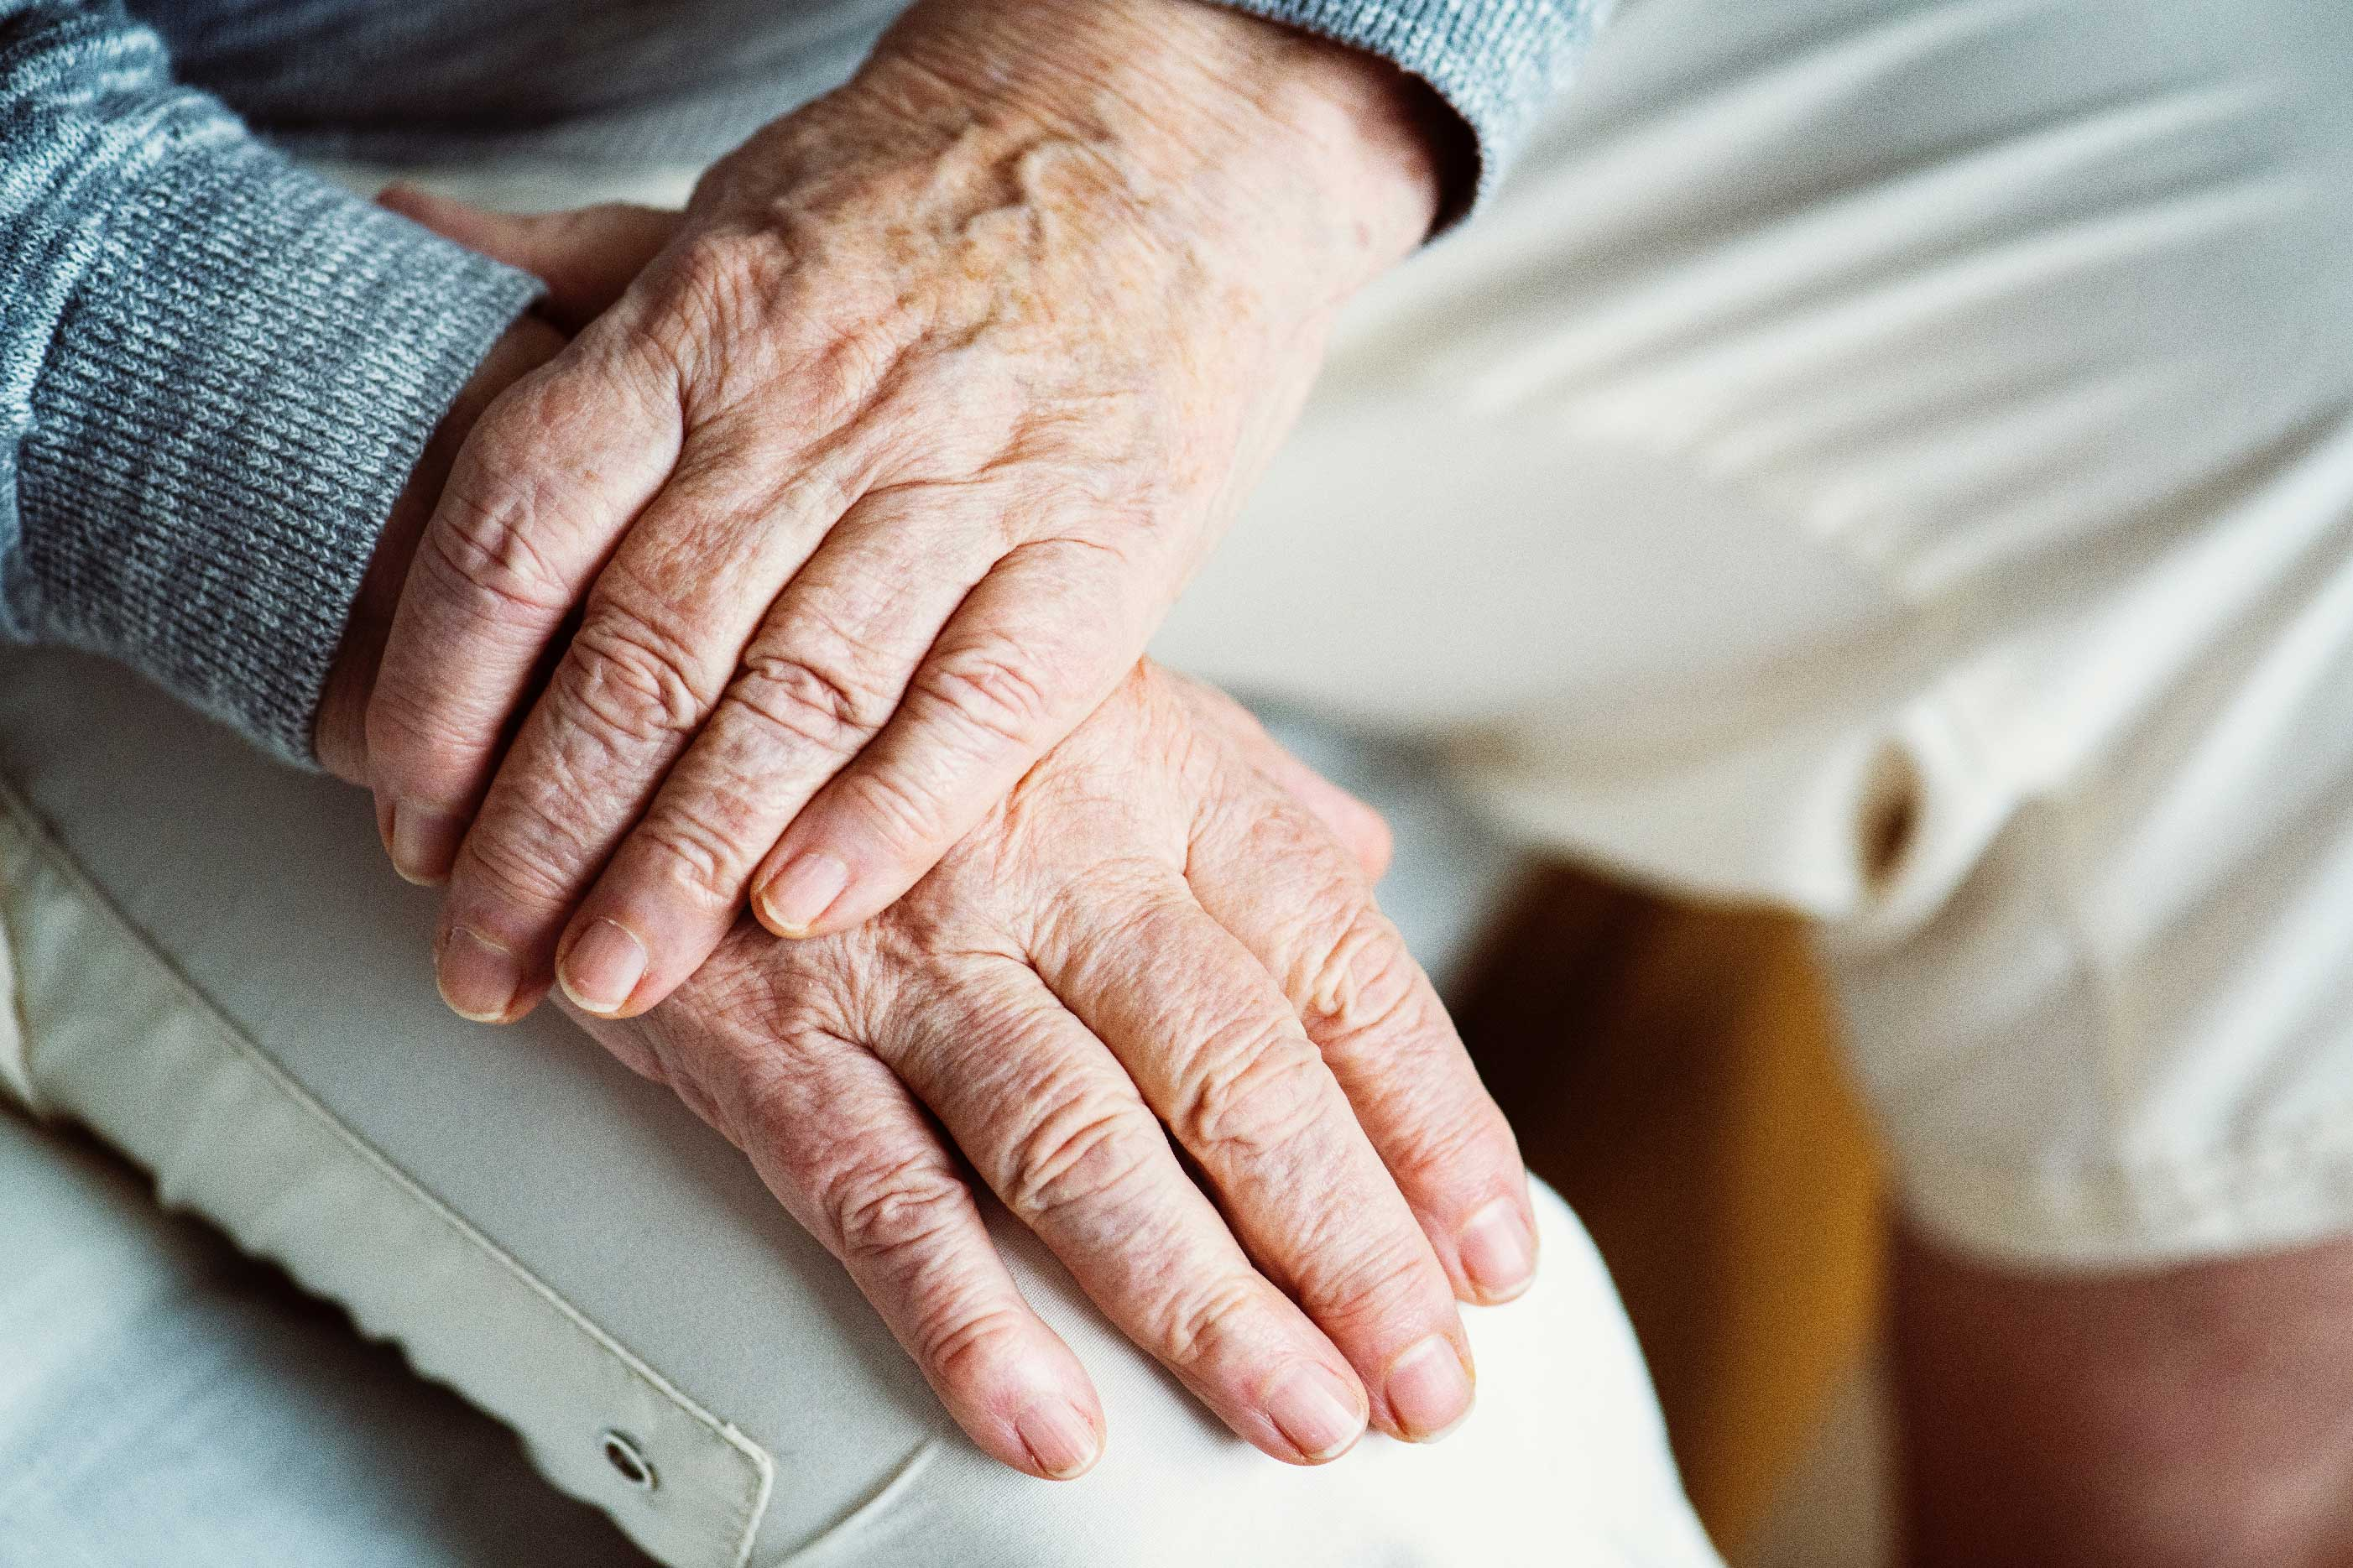 Old person with Alzheimer's hands